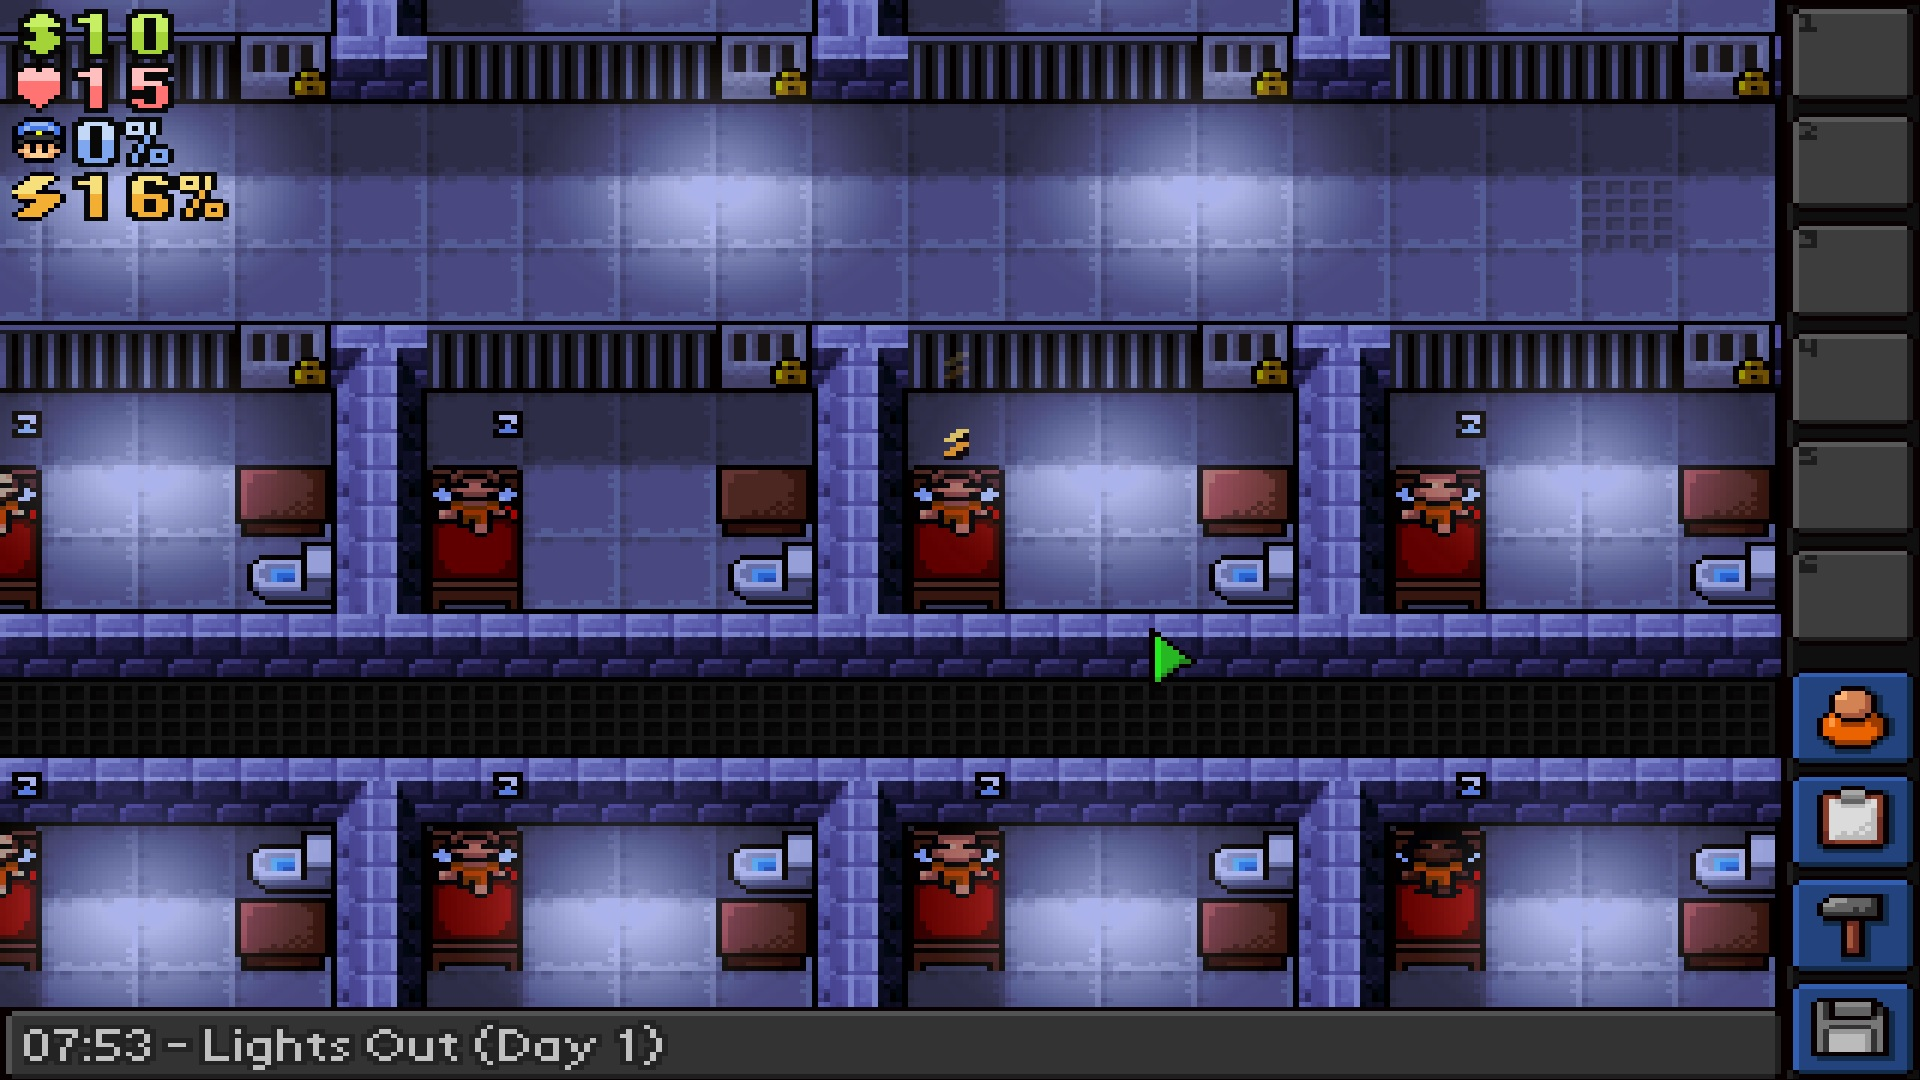 The Escapists - Fhurst Peak Correctional Facility [Online Game Code] by Team17 (Image #3)